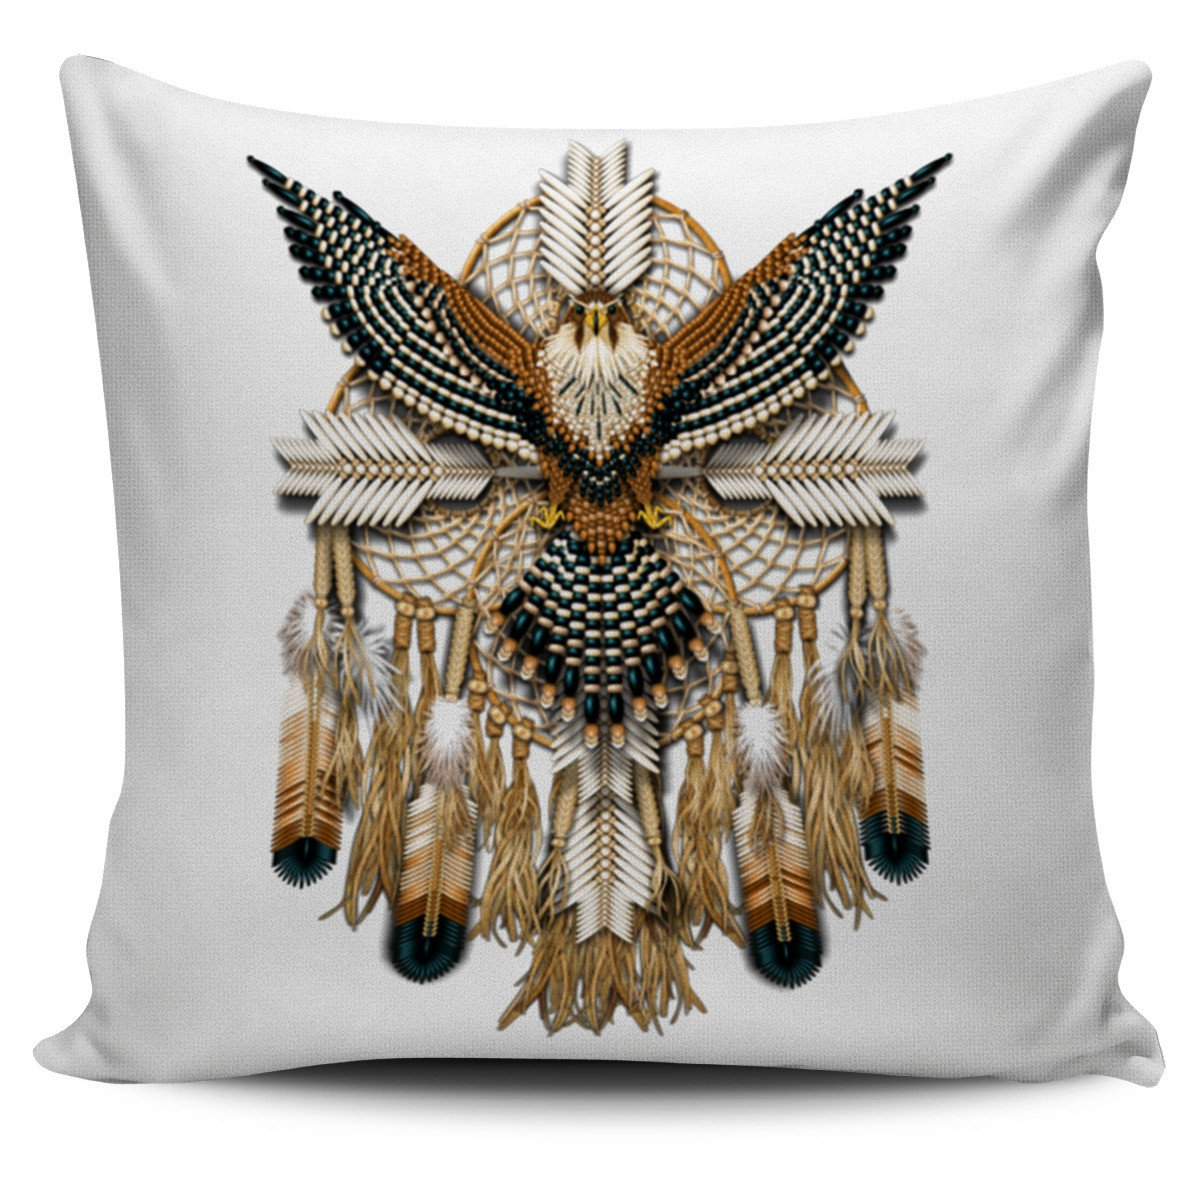 Shop for NATIVE AMERICANS at Familyloves: DREAMCATCHER PILLOWS ...